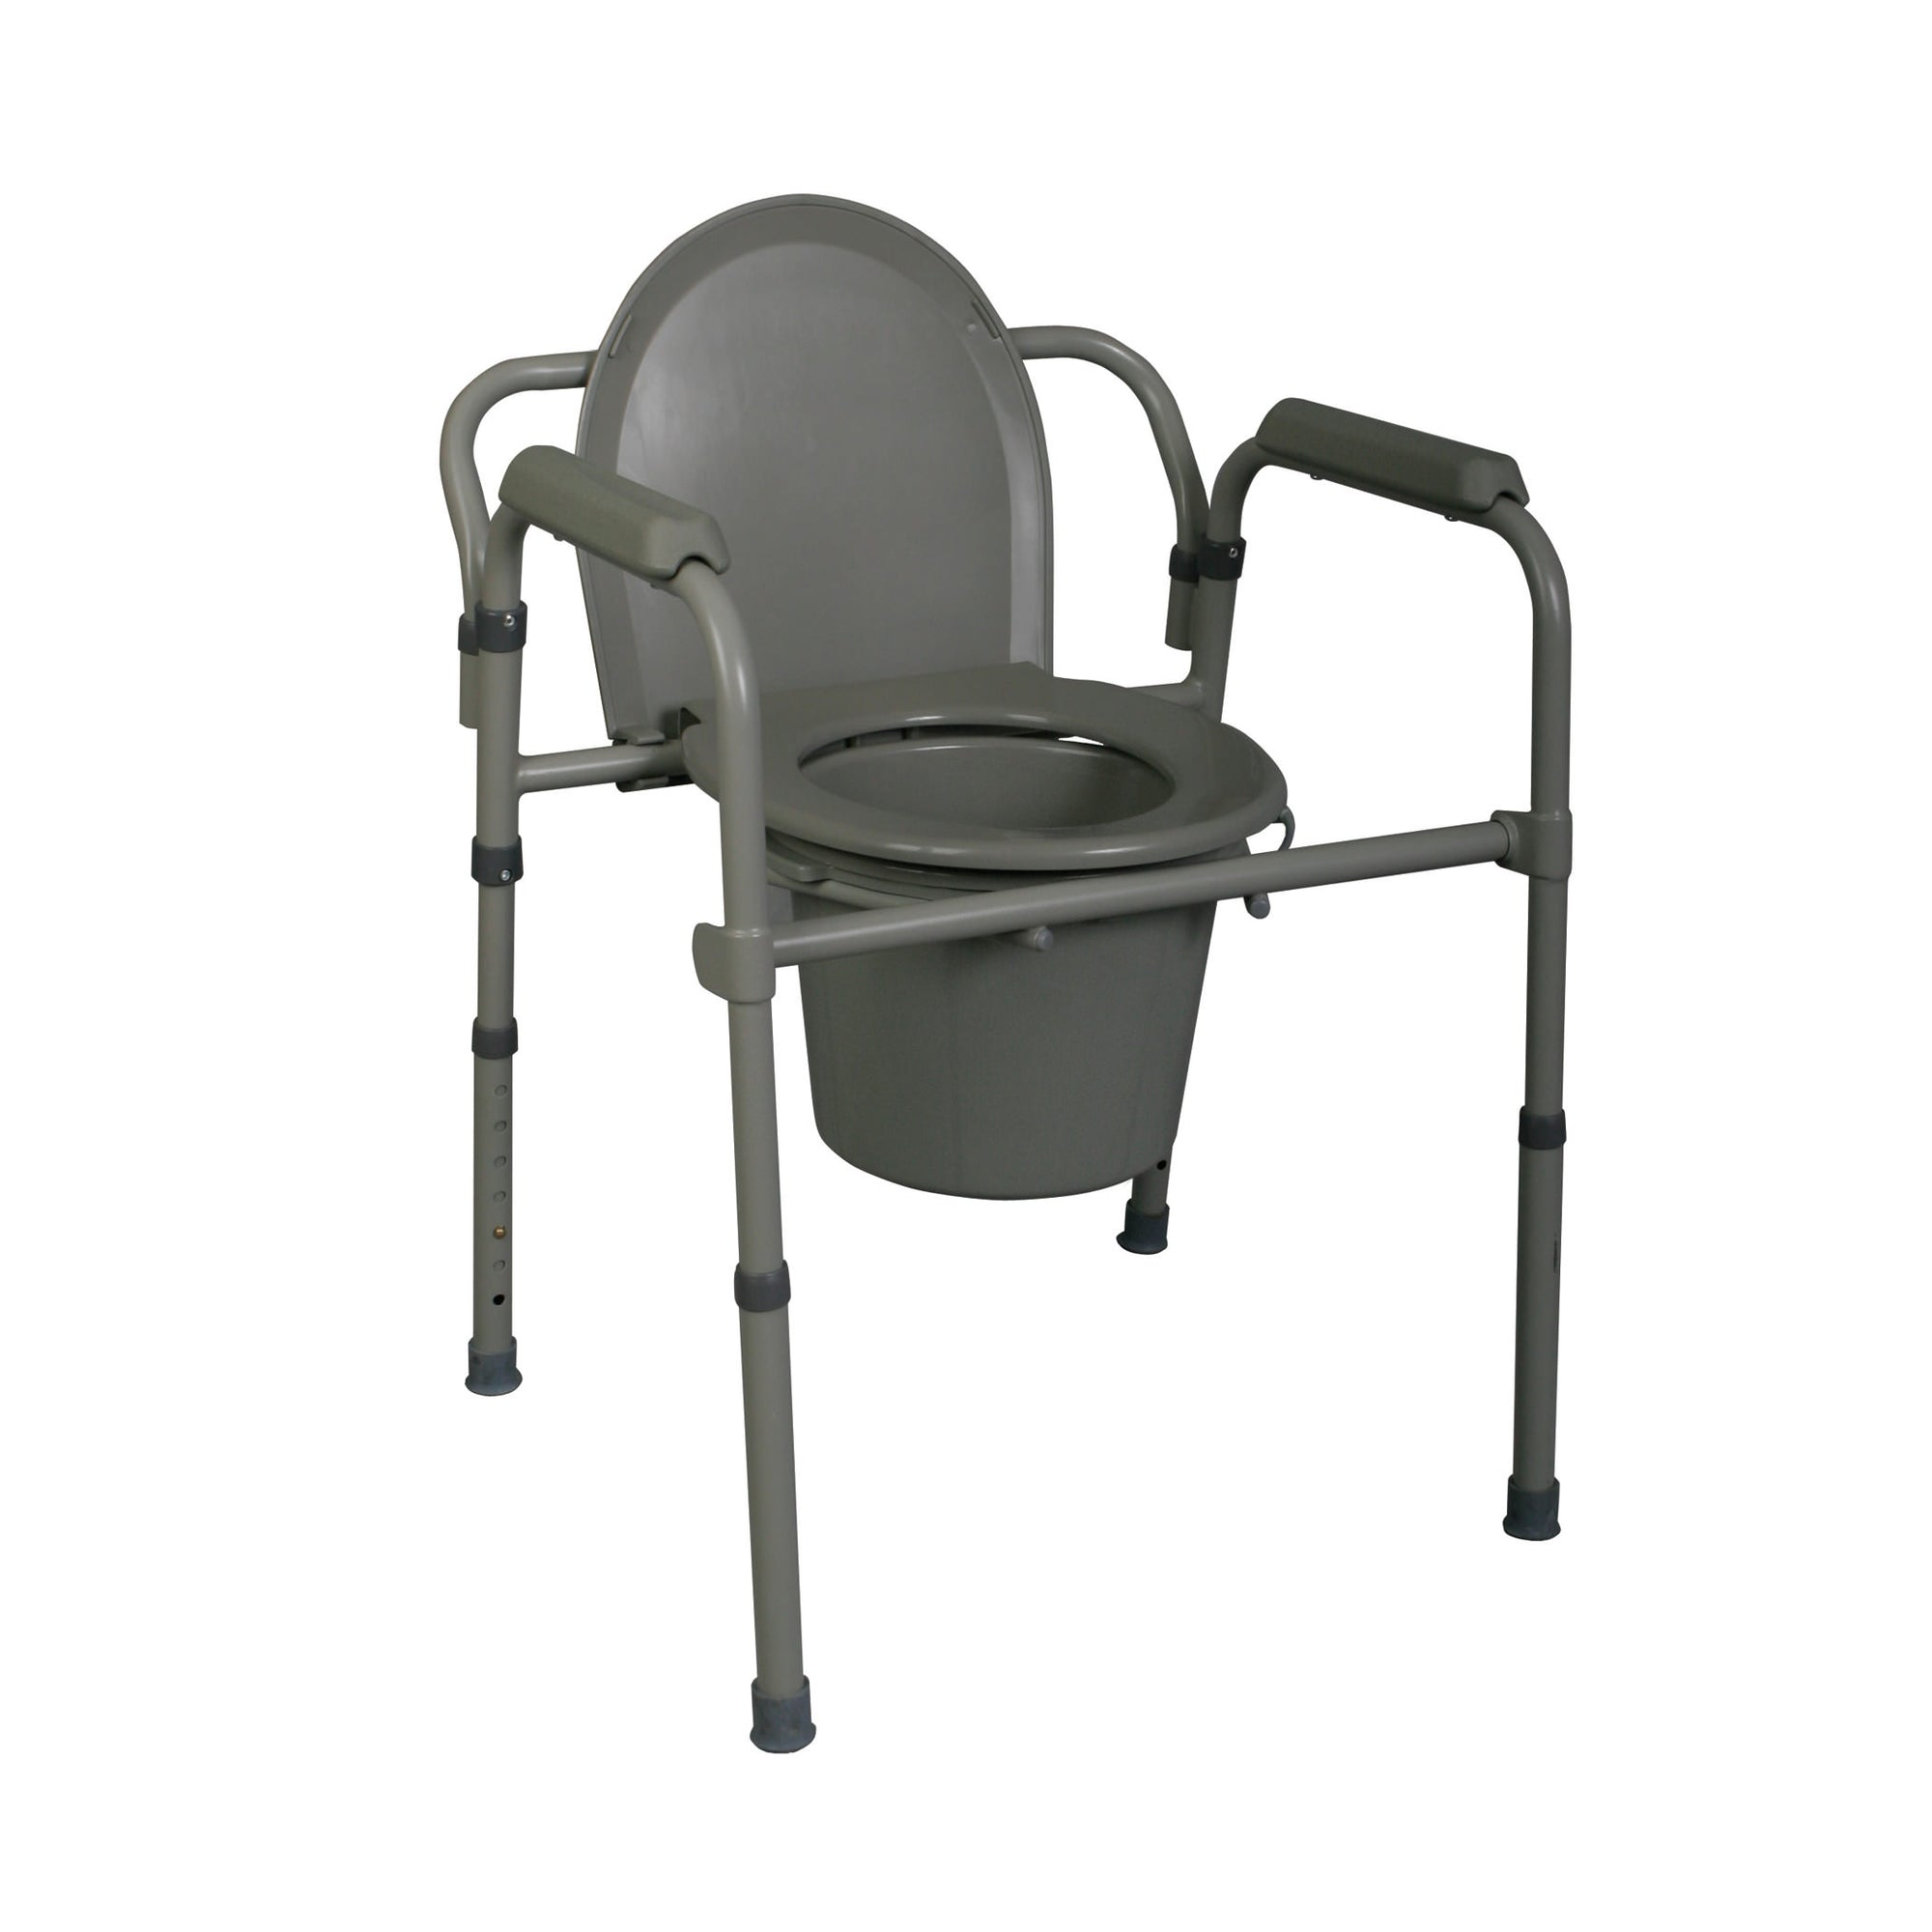 Medline Steel Bedside Commode